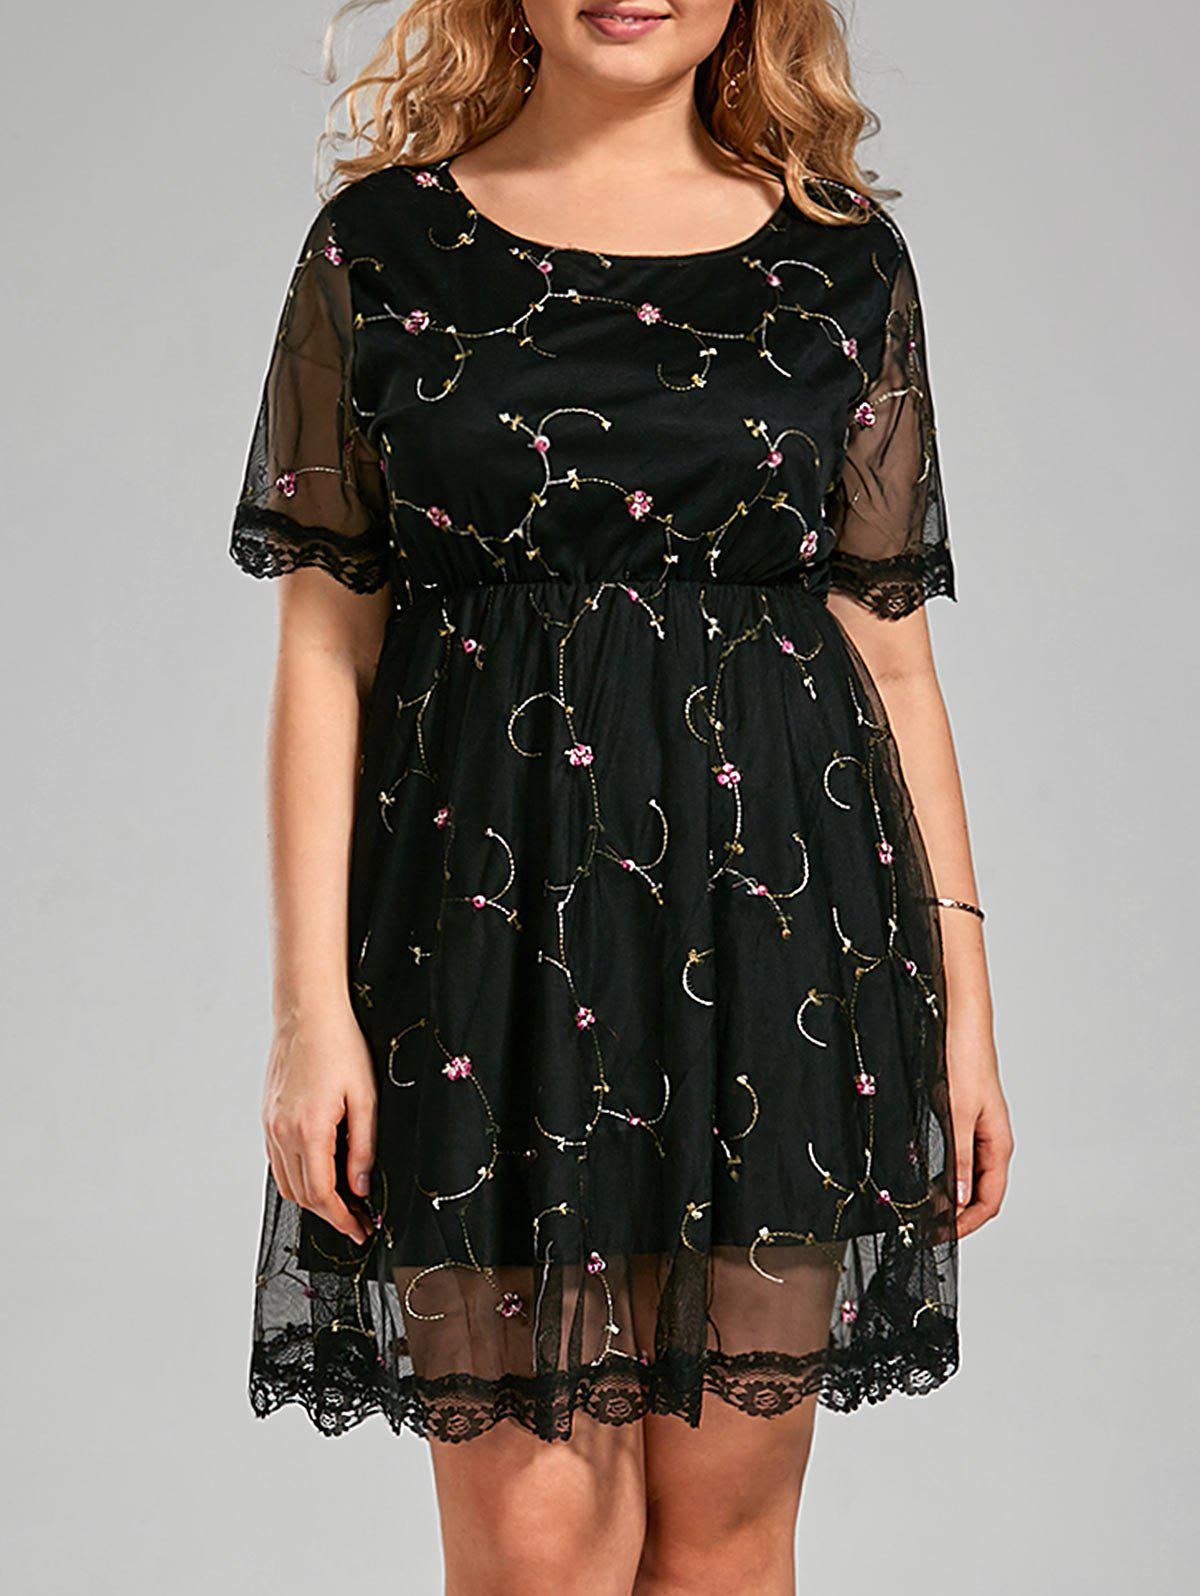 38% OFF] Semi Sheer Plus Size Embroidered Mesh Dress | Rosegal